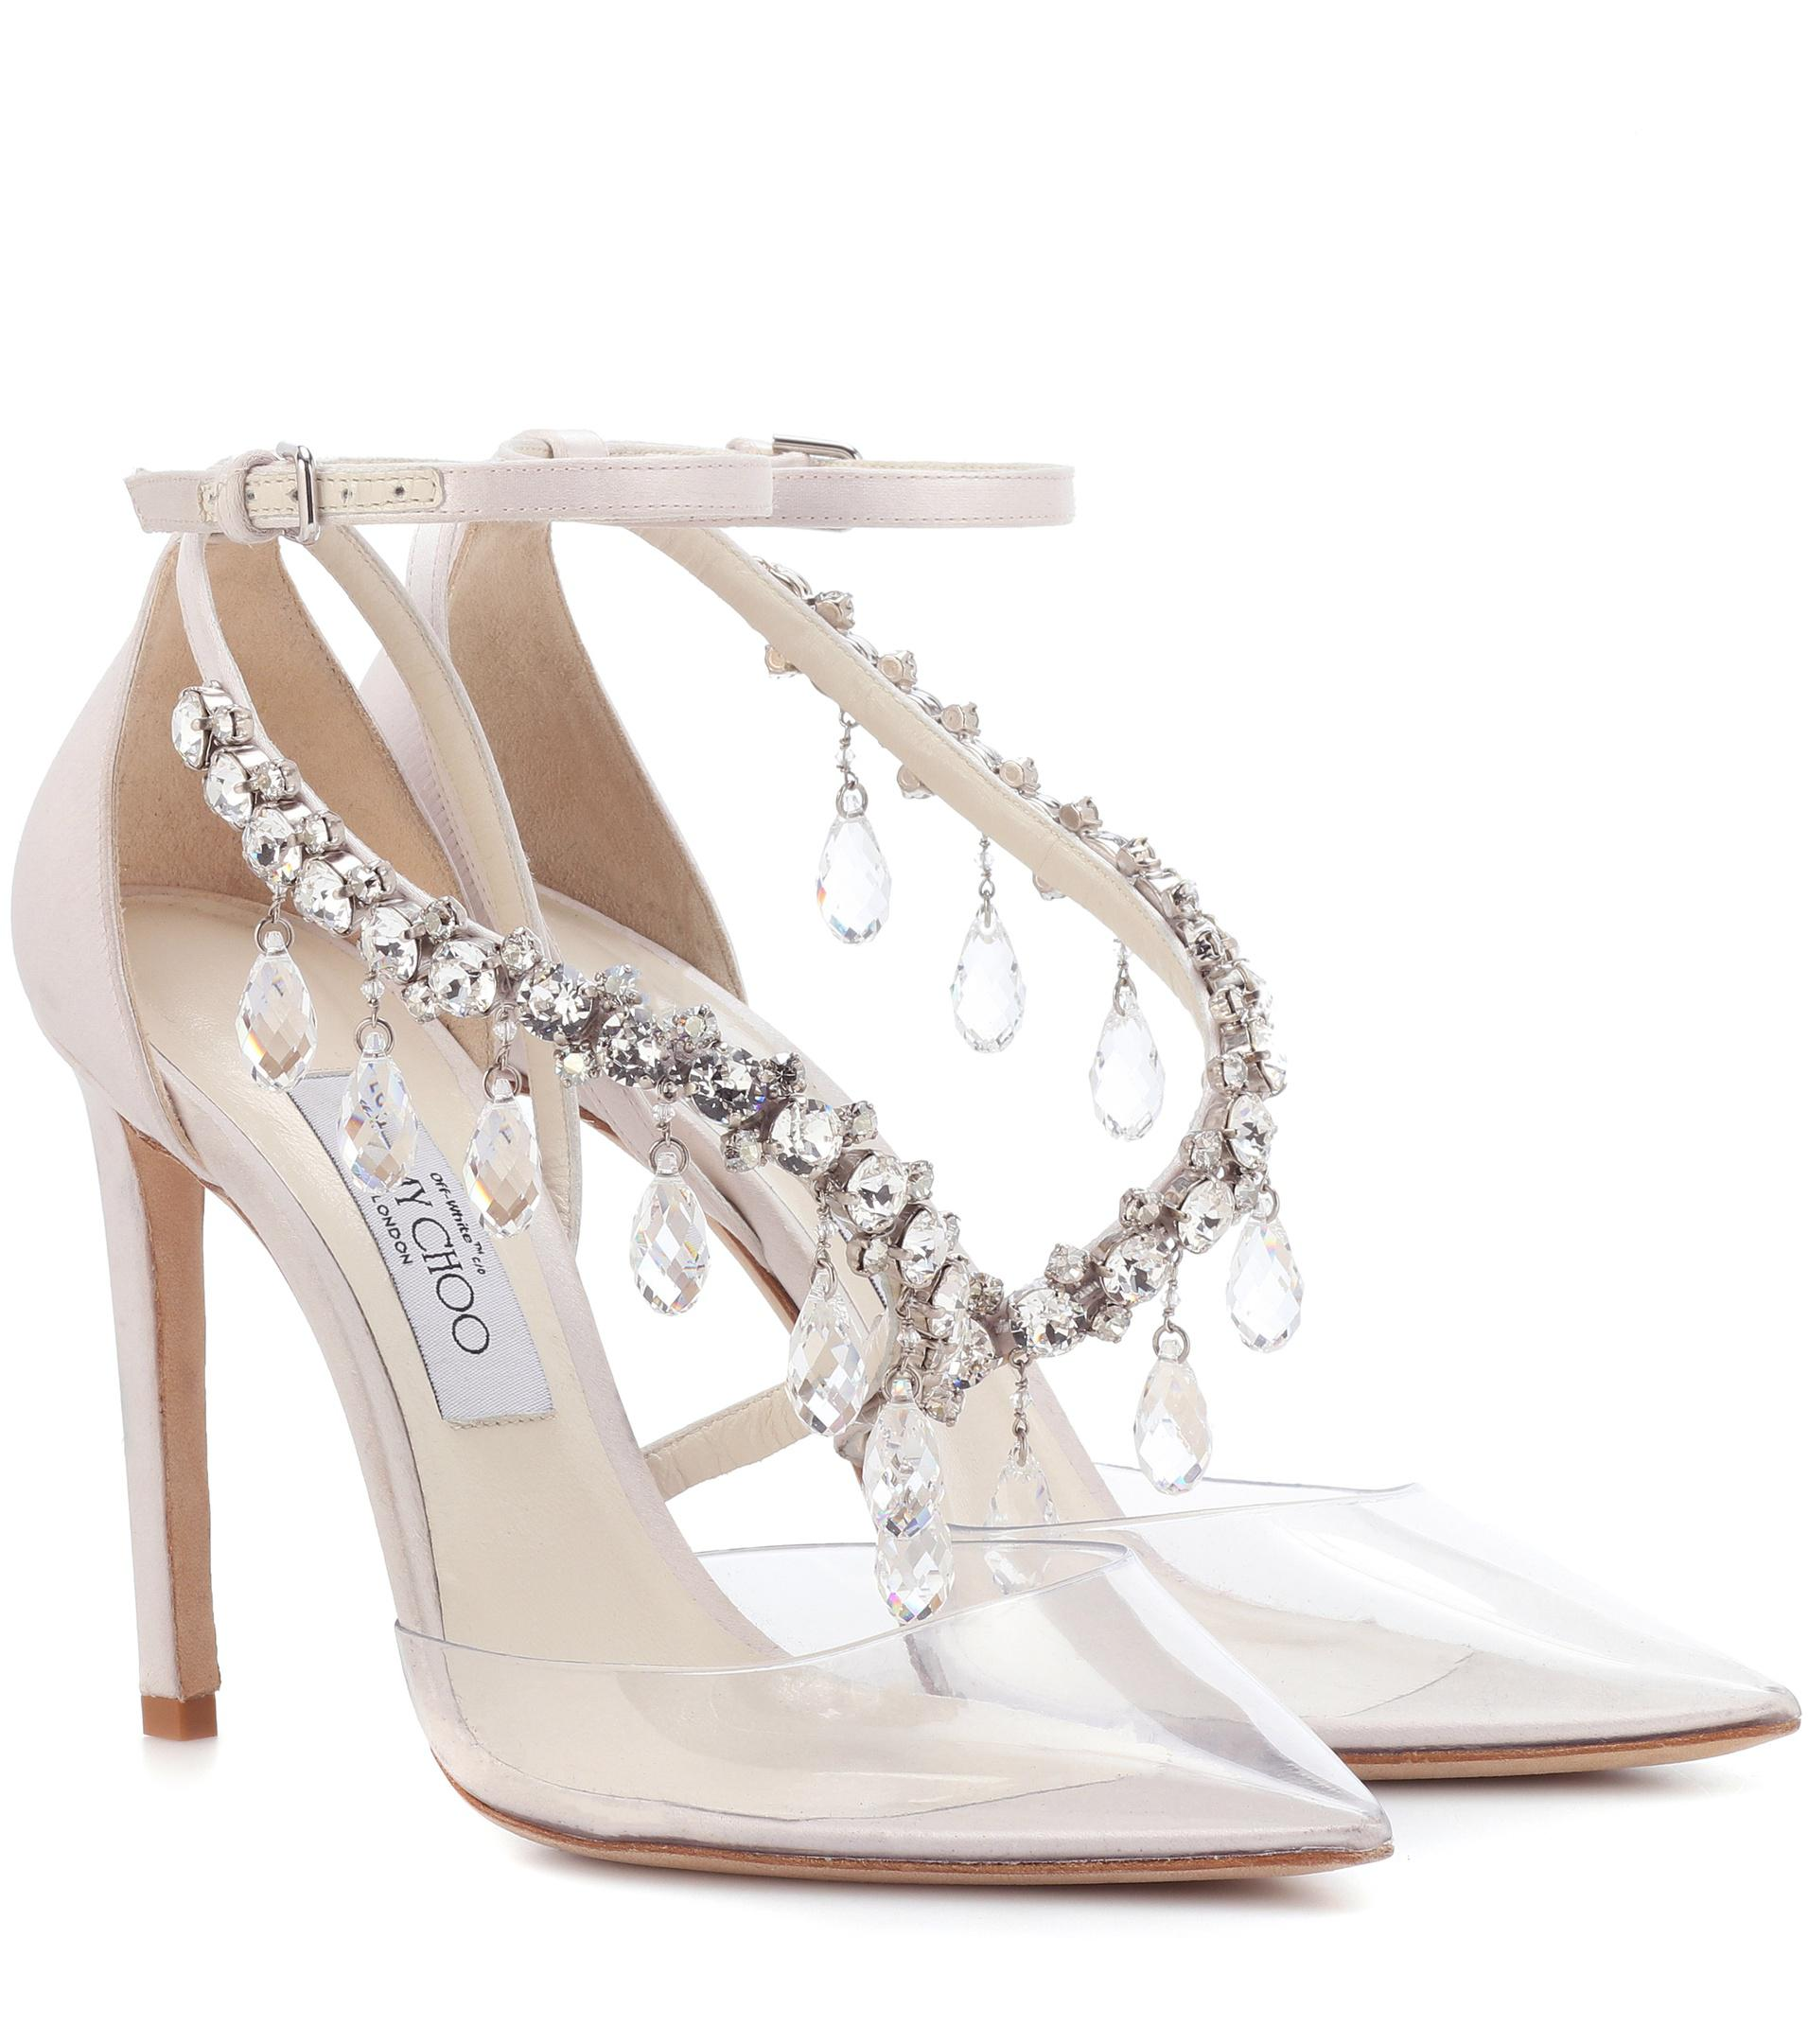 c9137a33d7b ... spain lyst jimmy choo x off white victoria 100 embellished satin pumps  3be73 ad01f